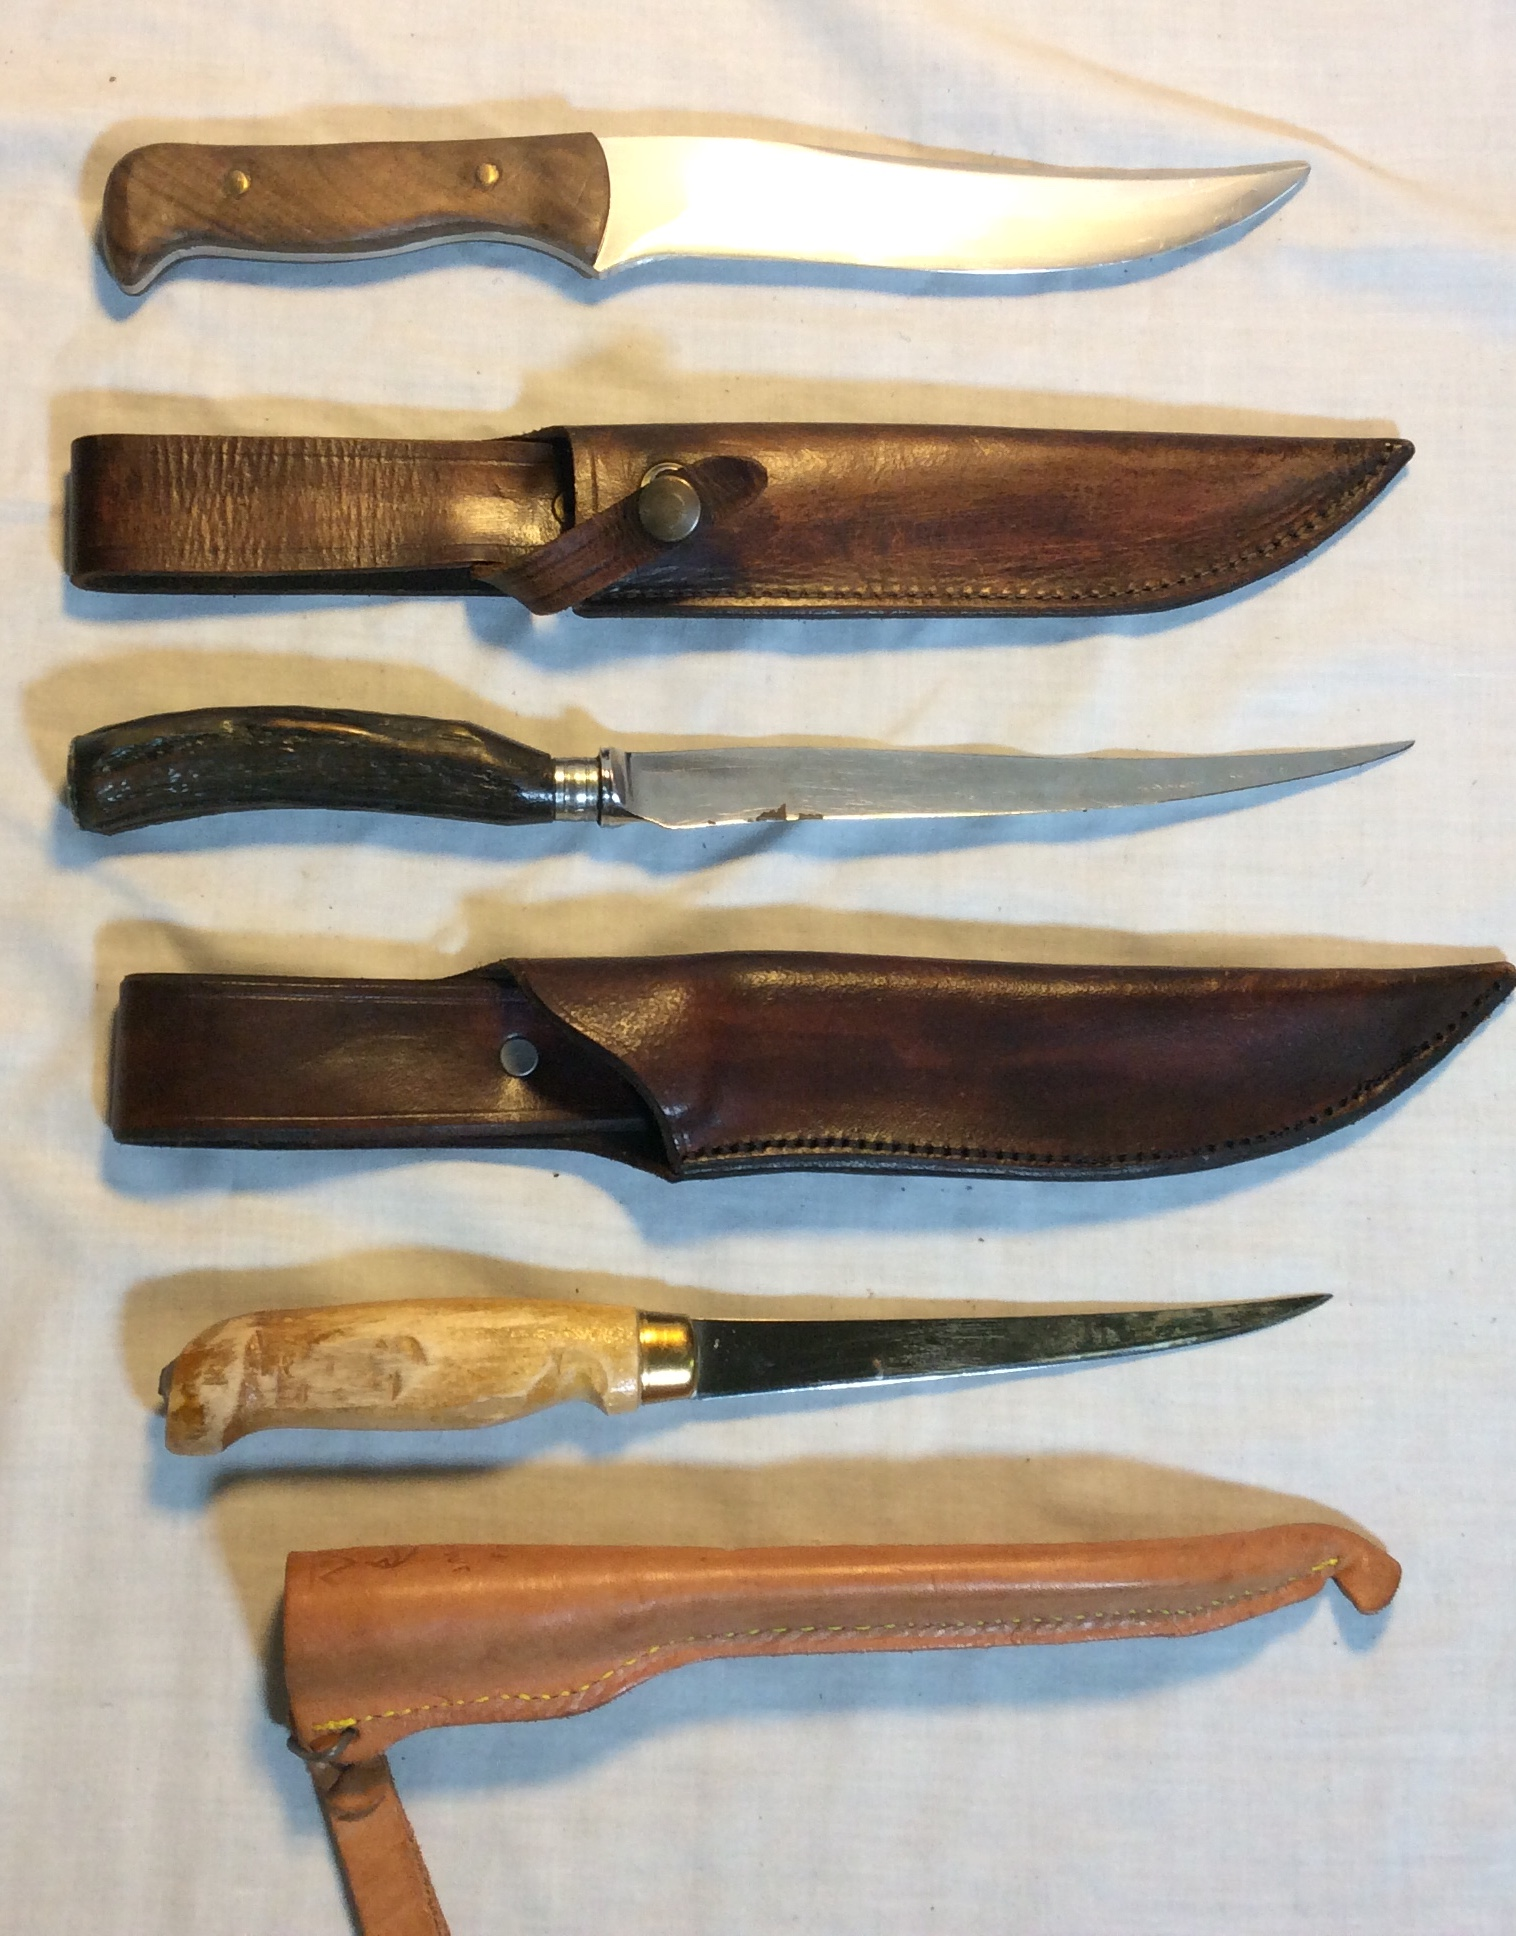 Rustic knives with sheaths